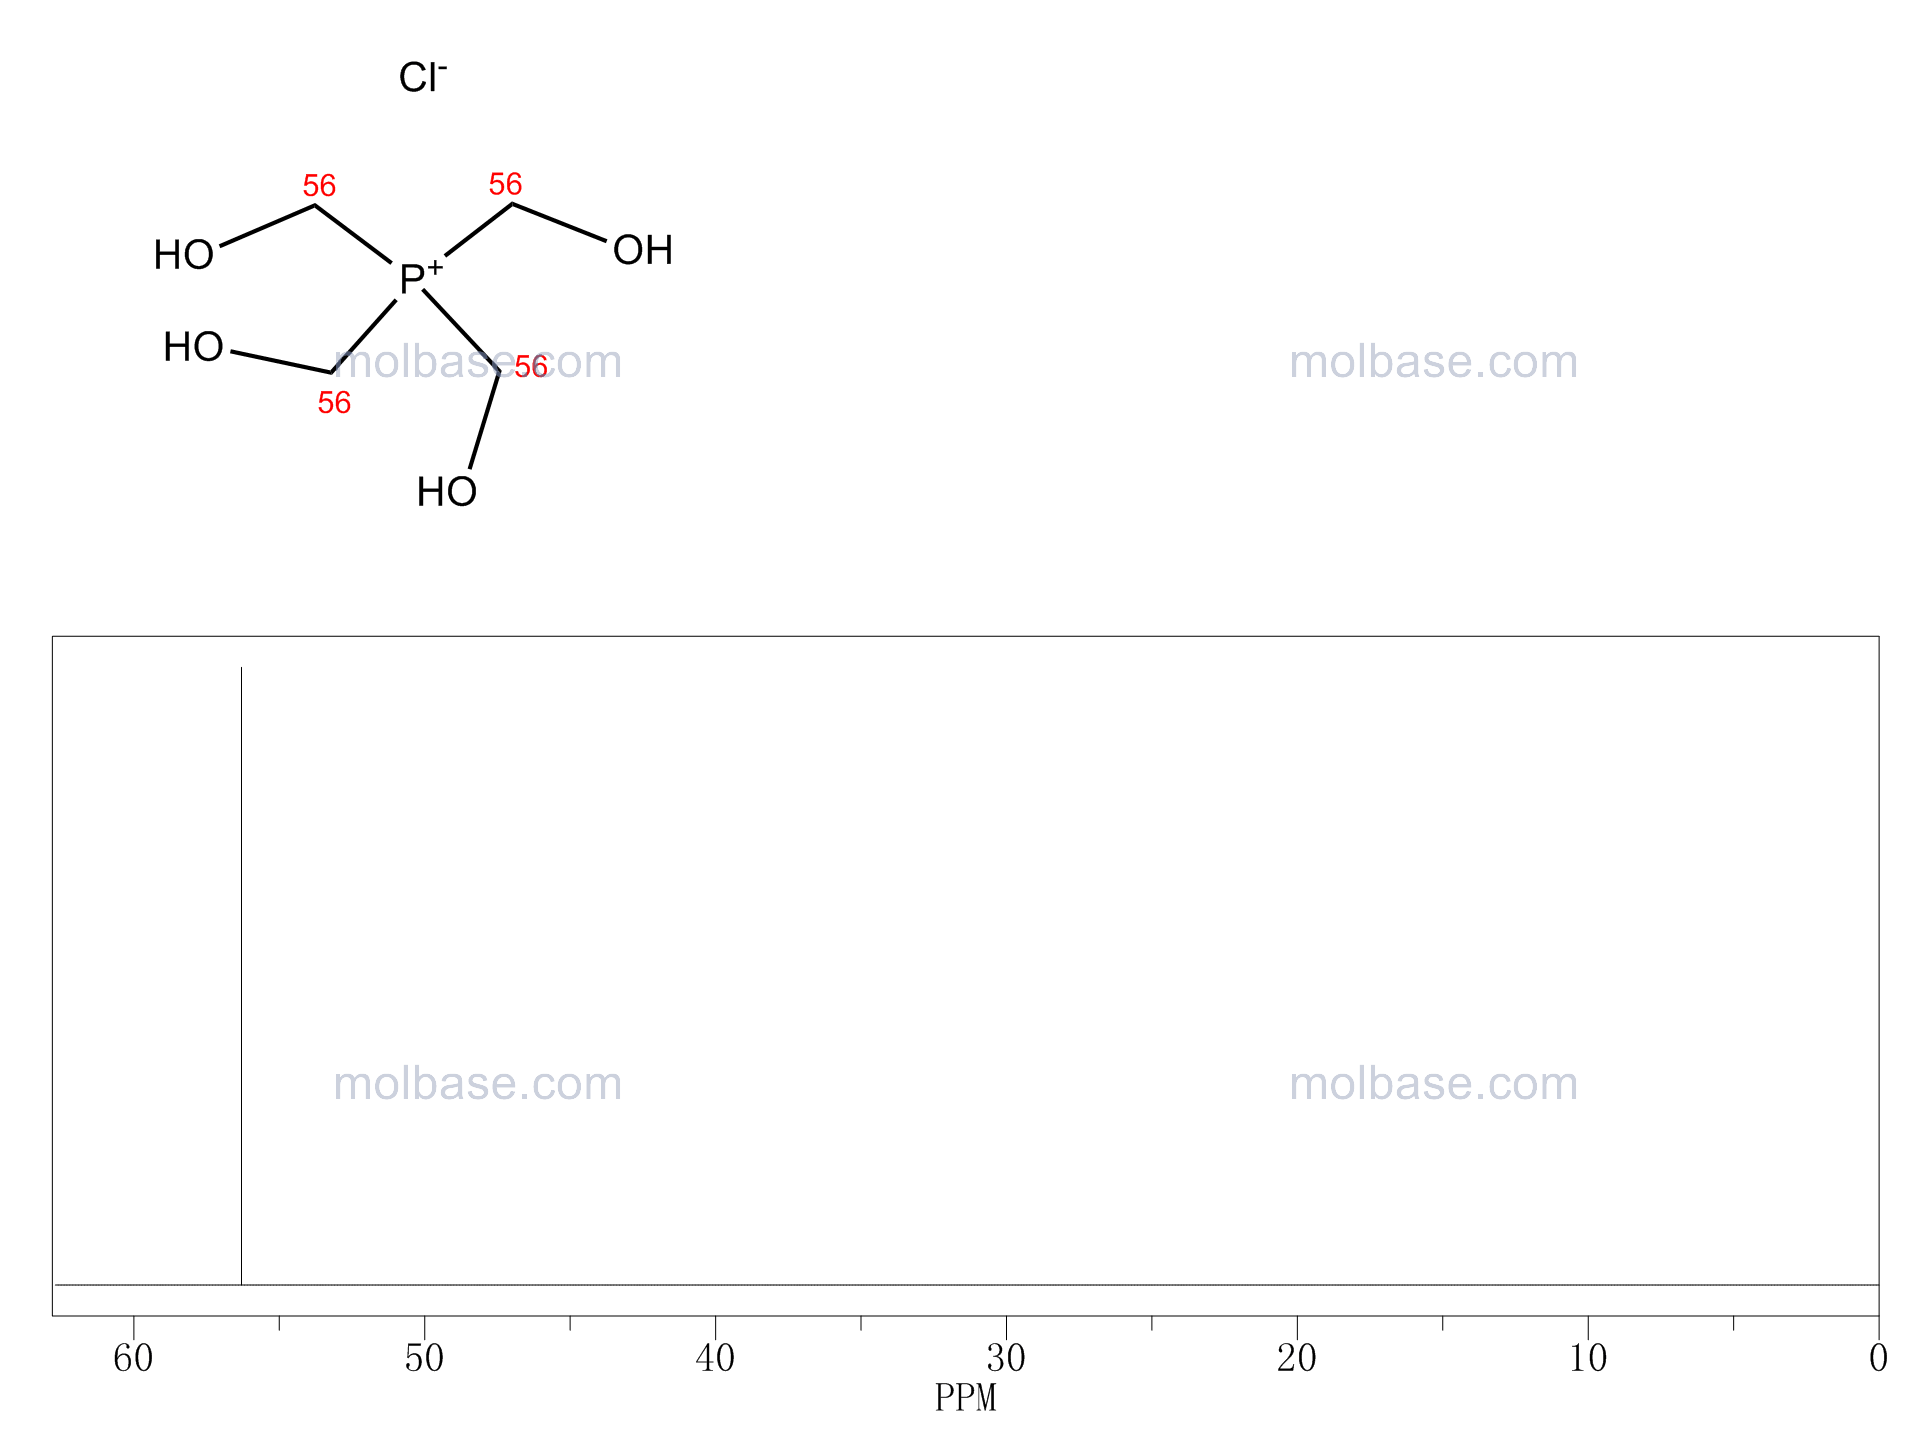 Tetrakis(hydroxymethyl)phosphonium chloride NMR spectra analysis, Chemical CAS NO. 124-64-1 NMR spectral analysis, Tetrakis(hydroxymethyl)phosphonium chloride C-NMR spectrum